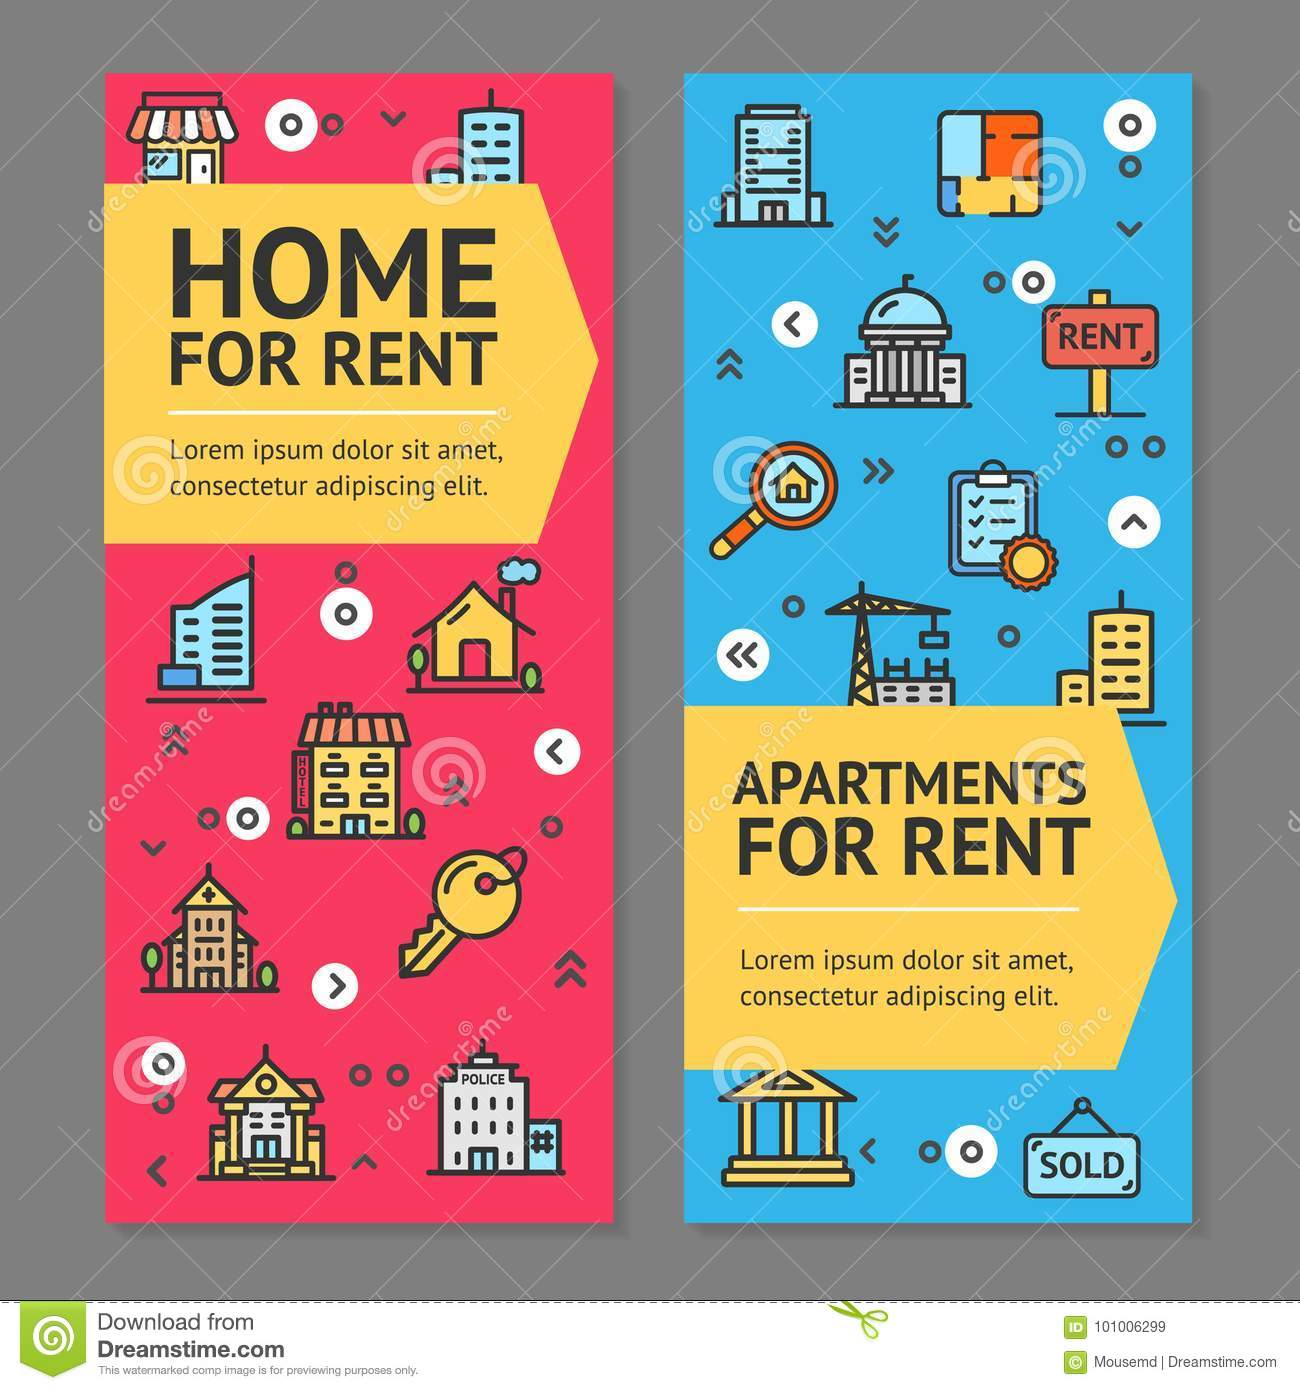 Apartment For Rent Flyer: Building House Or Home And Apartment For Rent Flyer Banner